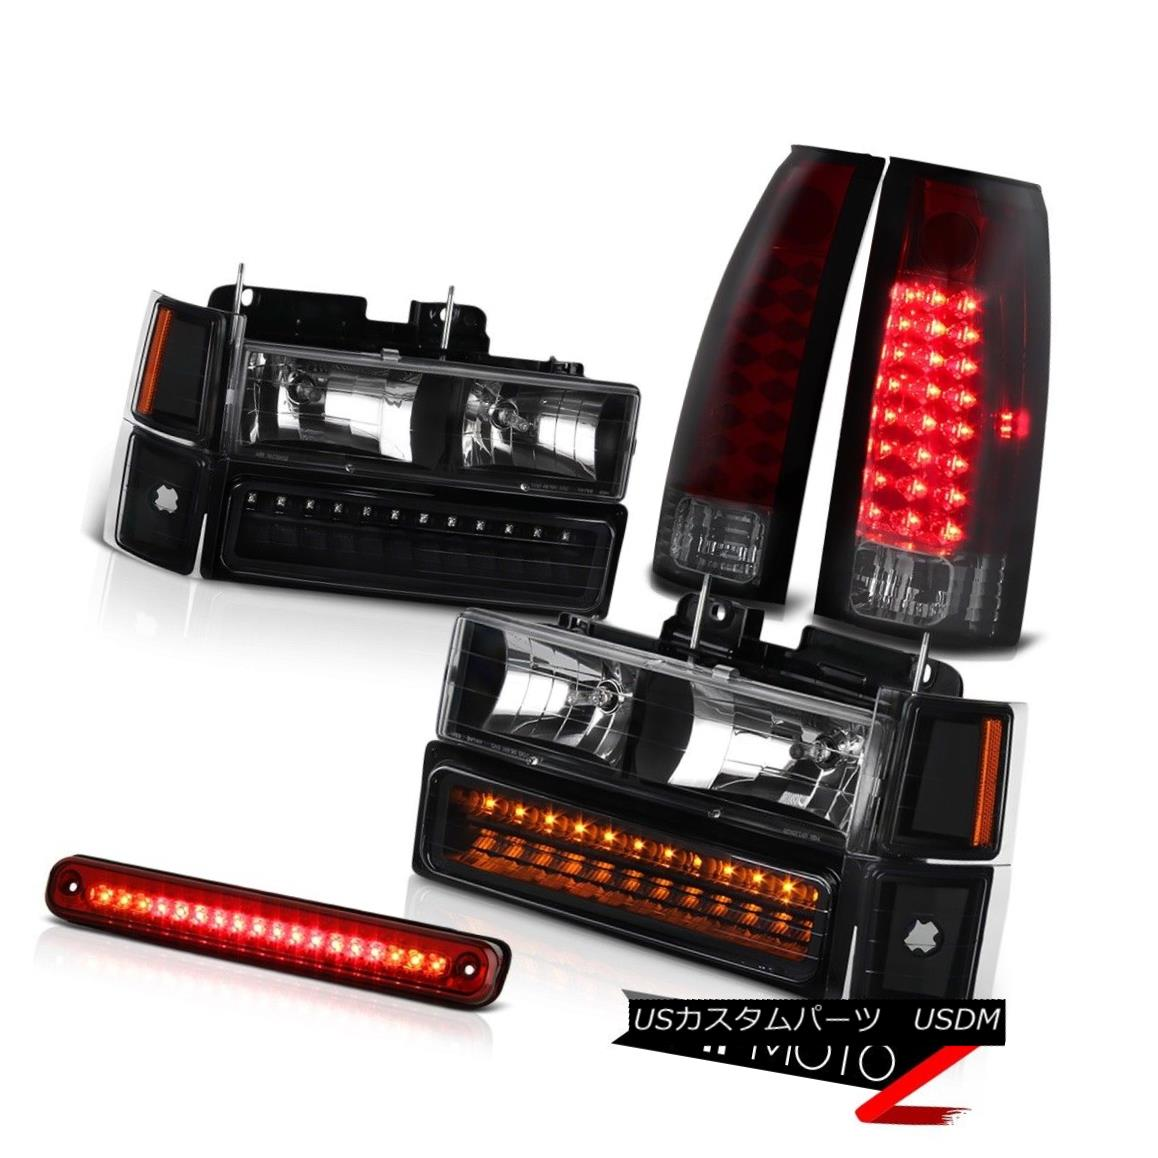 ヘッドライト 1994-1998 Chevrolet CK 1500 2500 3500 Red LED 3RD Cargo Tail Lights Headlights 1994-1998 Chevrolet CK 1500 2500 3500レッドLED 3RDカーゴテールライトヘッドライト